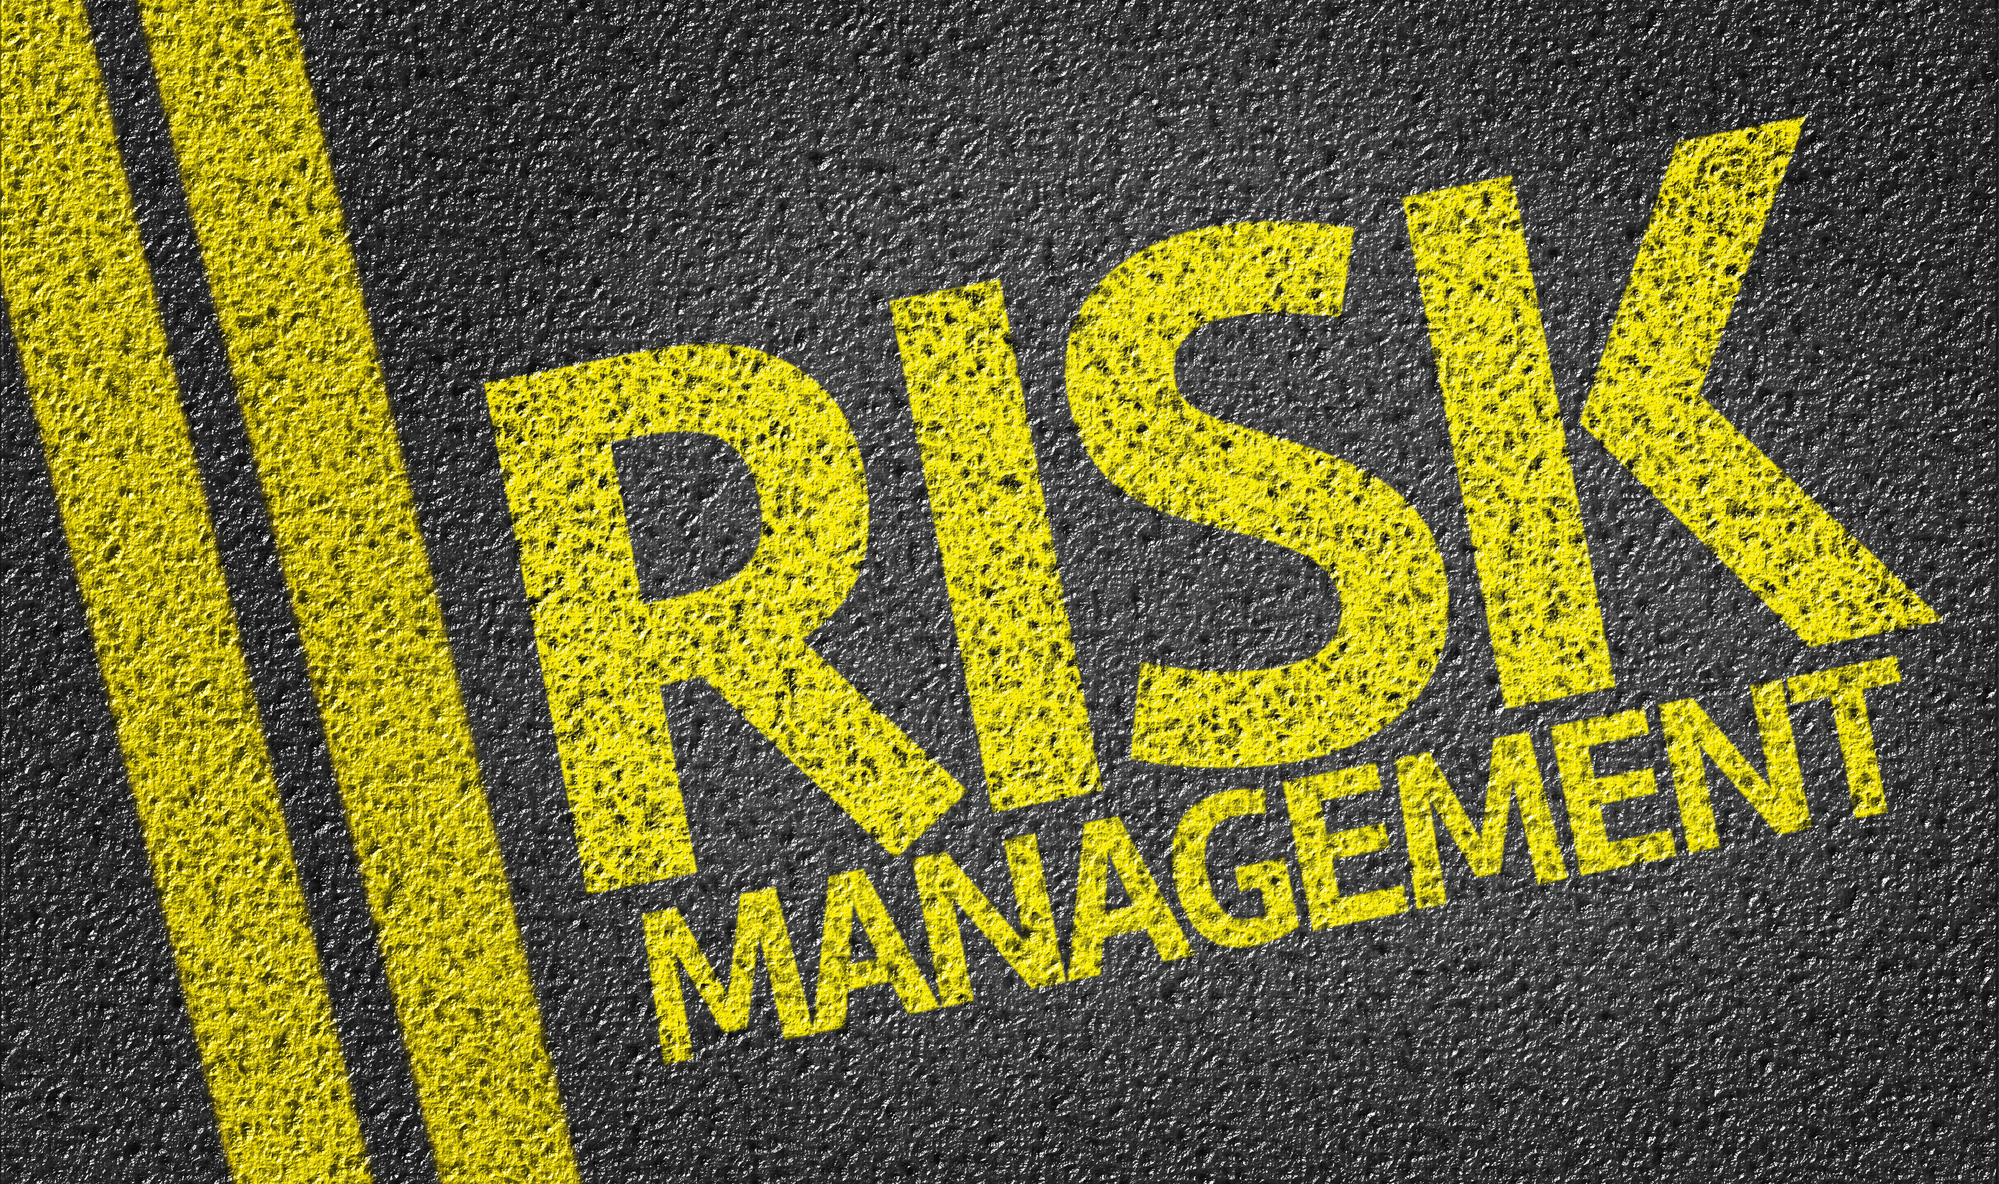 Risk Management and Reduction - Teen Driving Solutions - DPDHRisk Management and Reduction - Teen Driving Solutions - DPDH